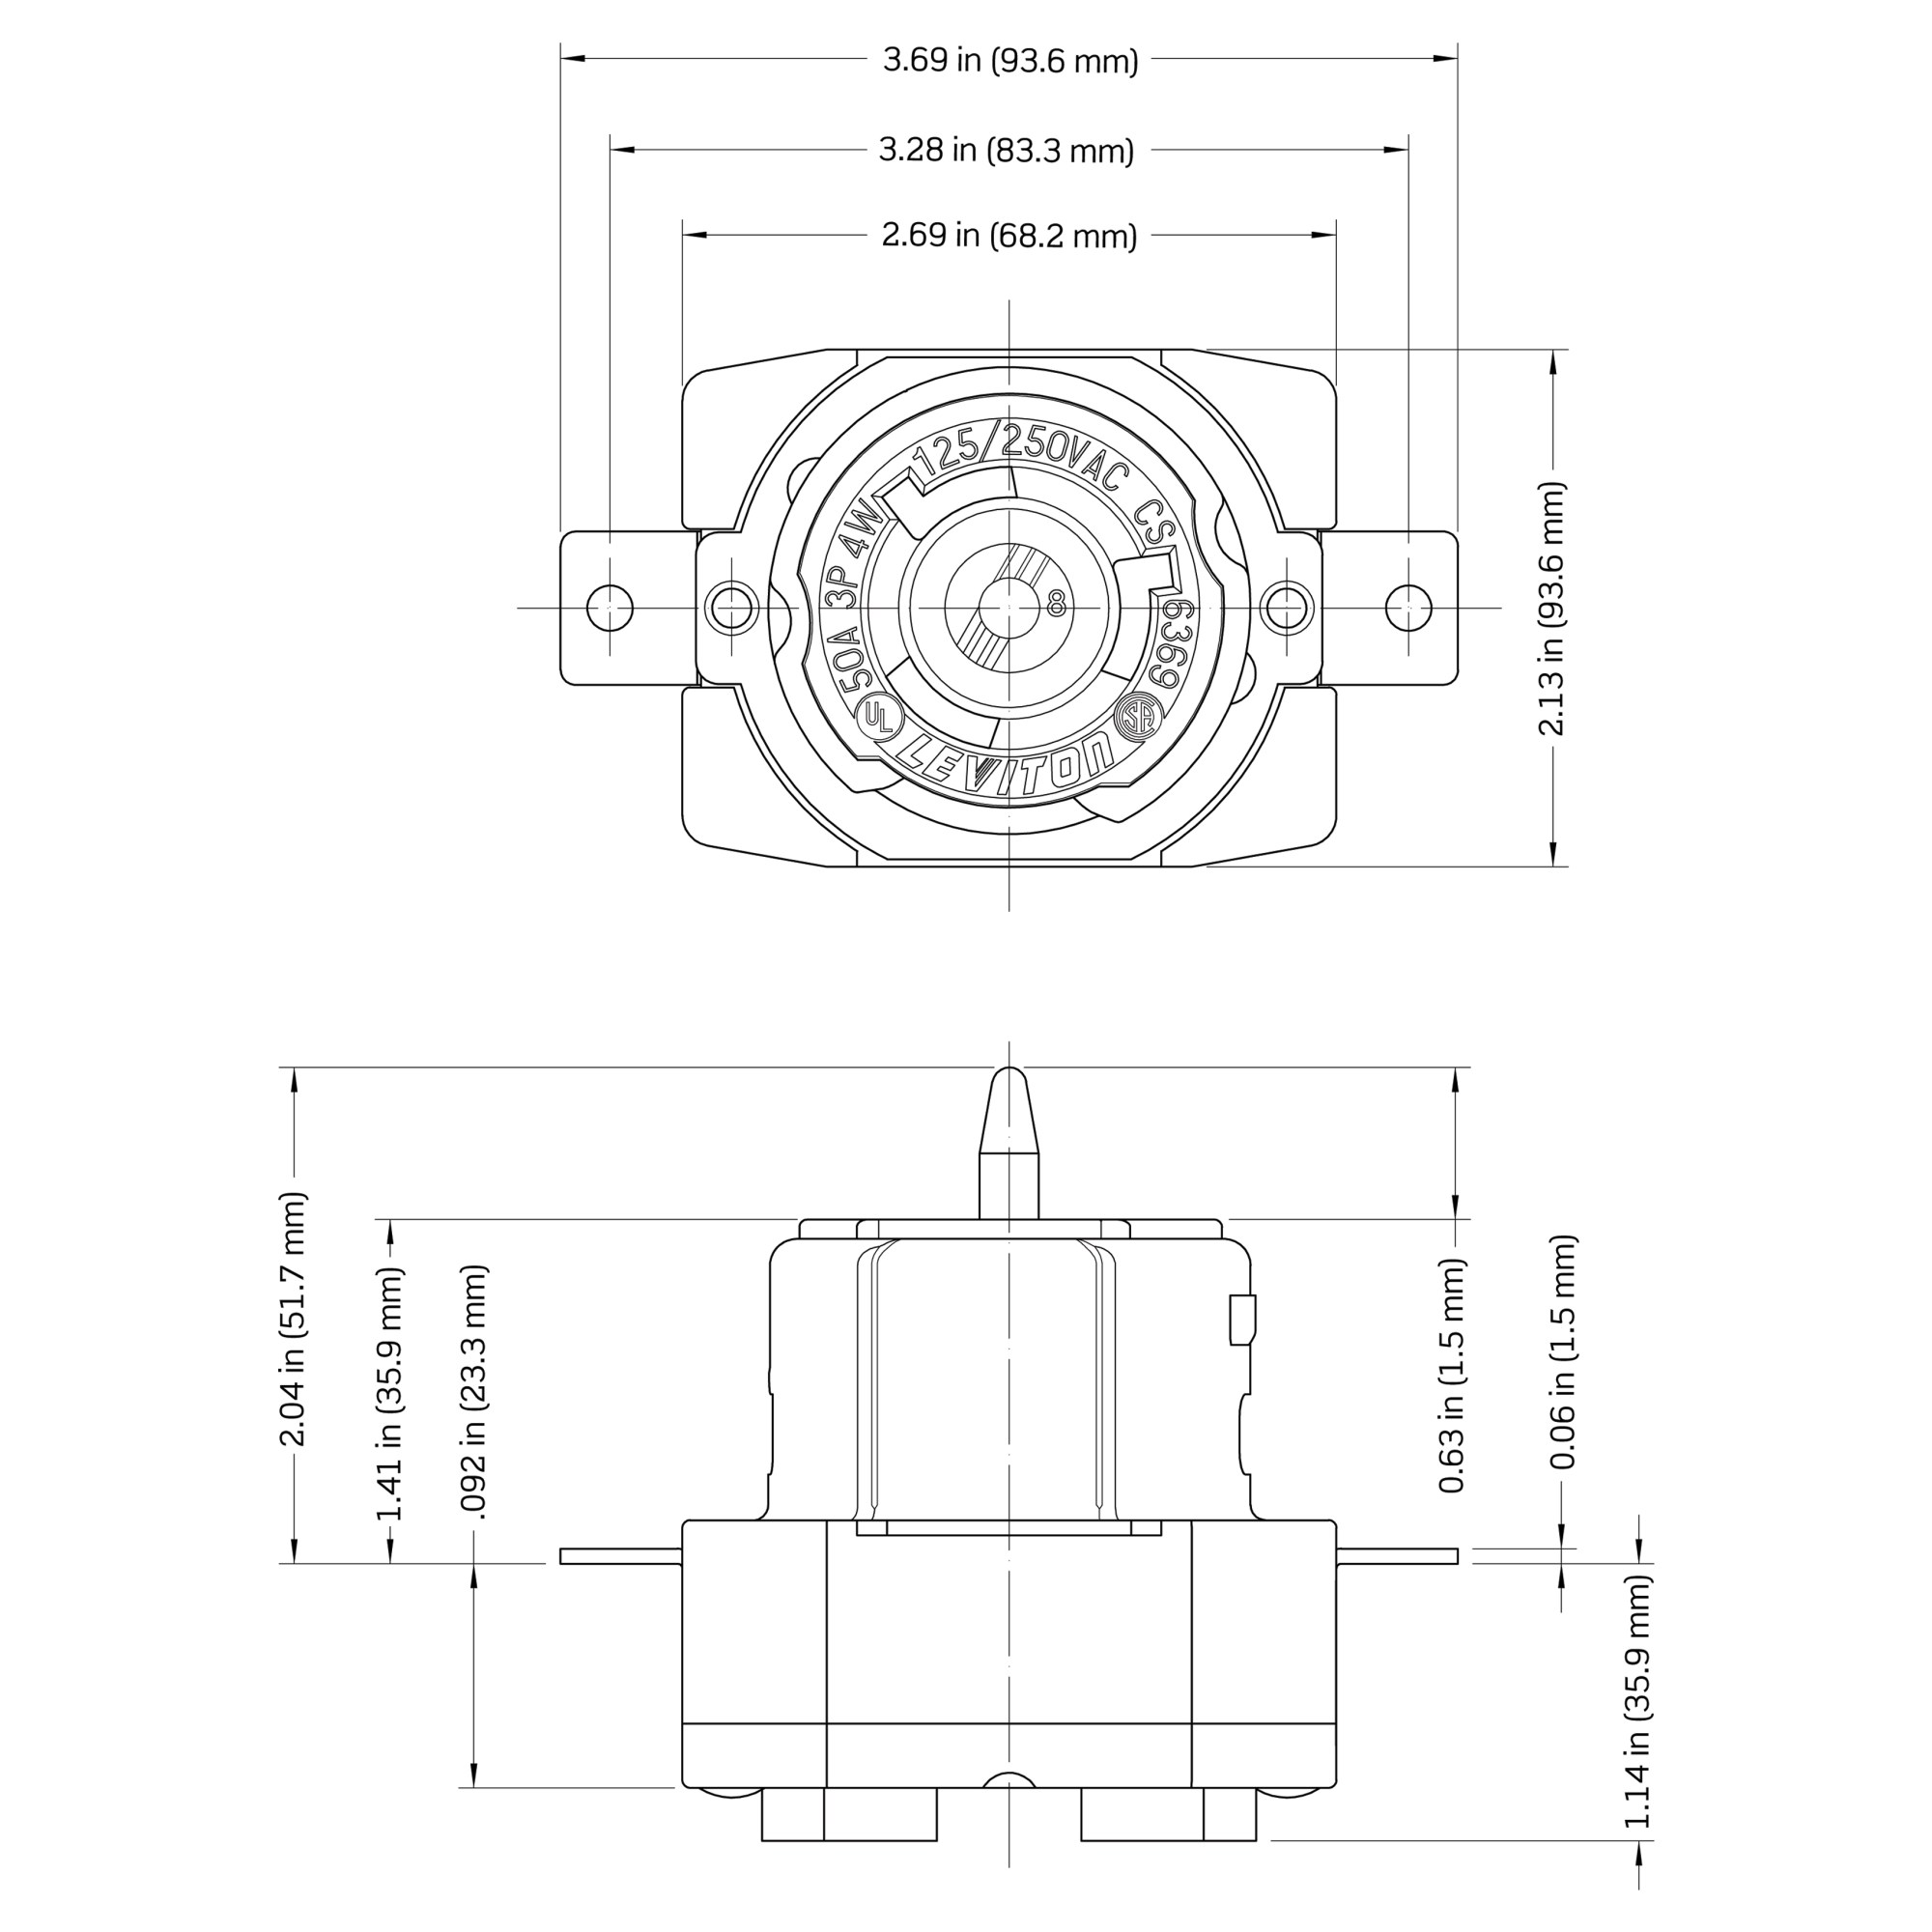 hight resolution of leviton 50 amp wire diagram wiring diagrams global leviton 50 amp wire diagram